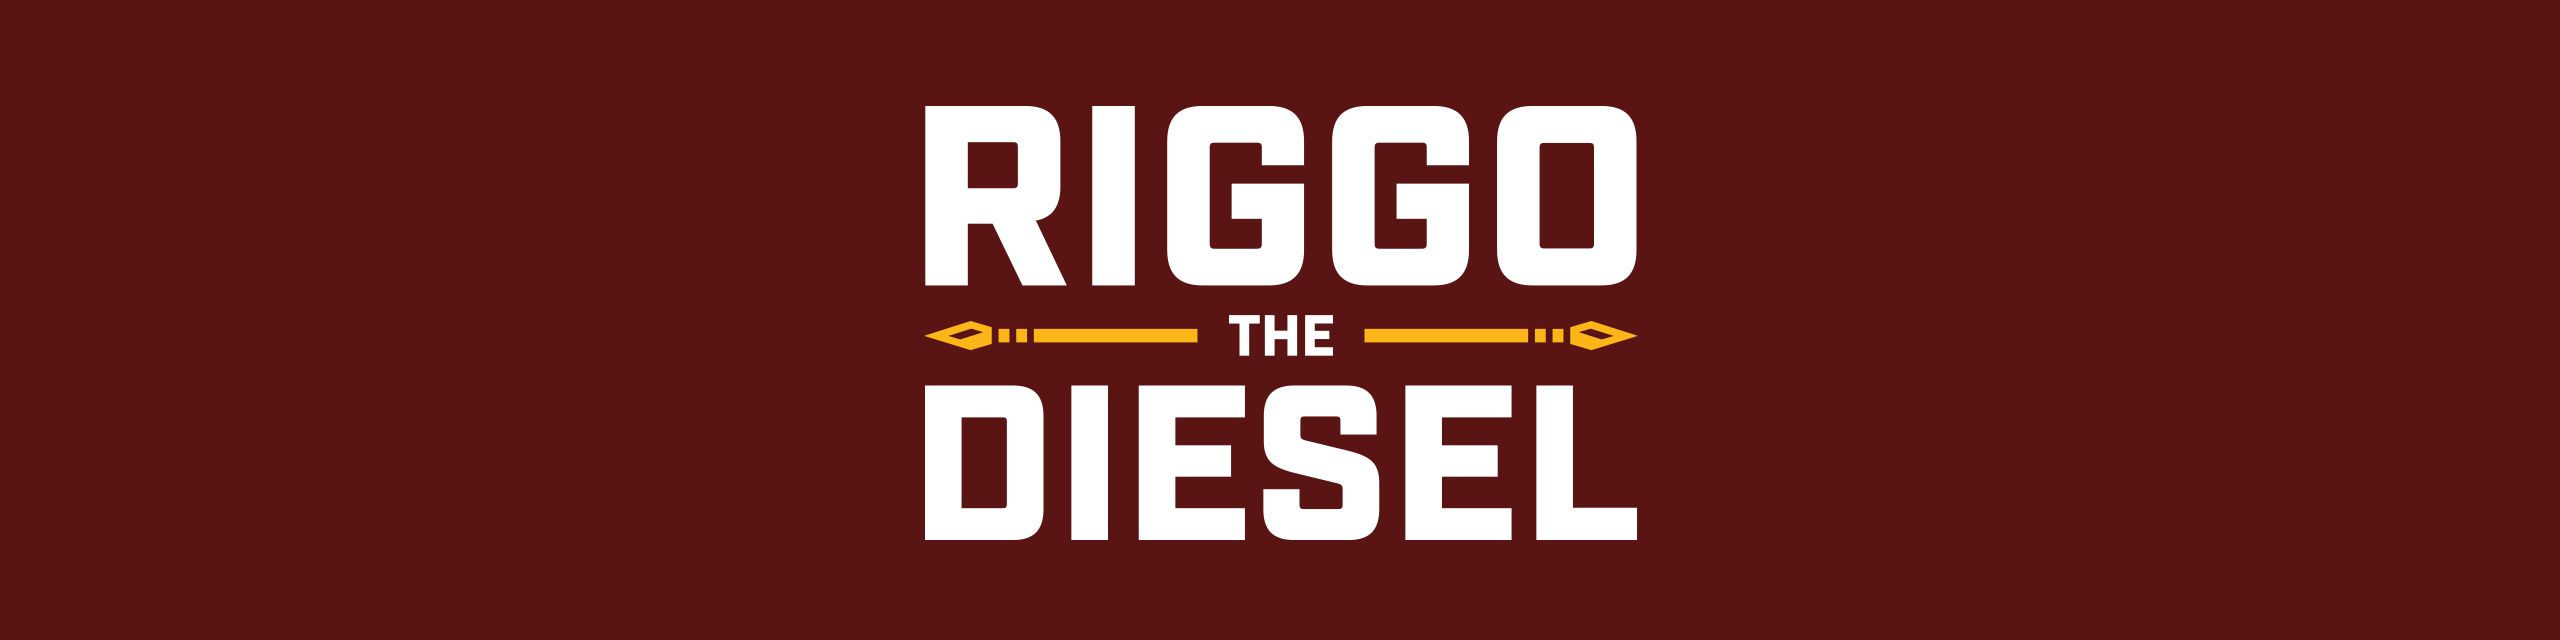 podcast_header-riggo_the_diesel